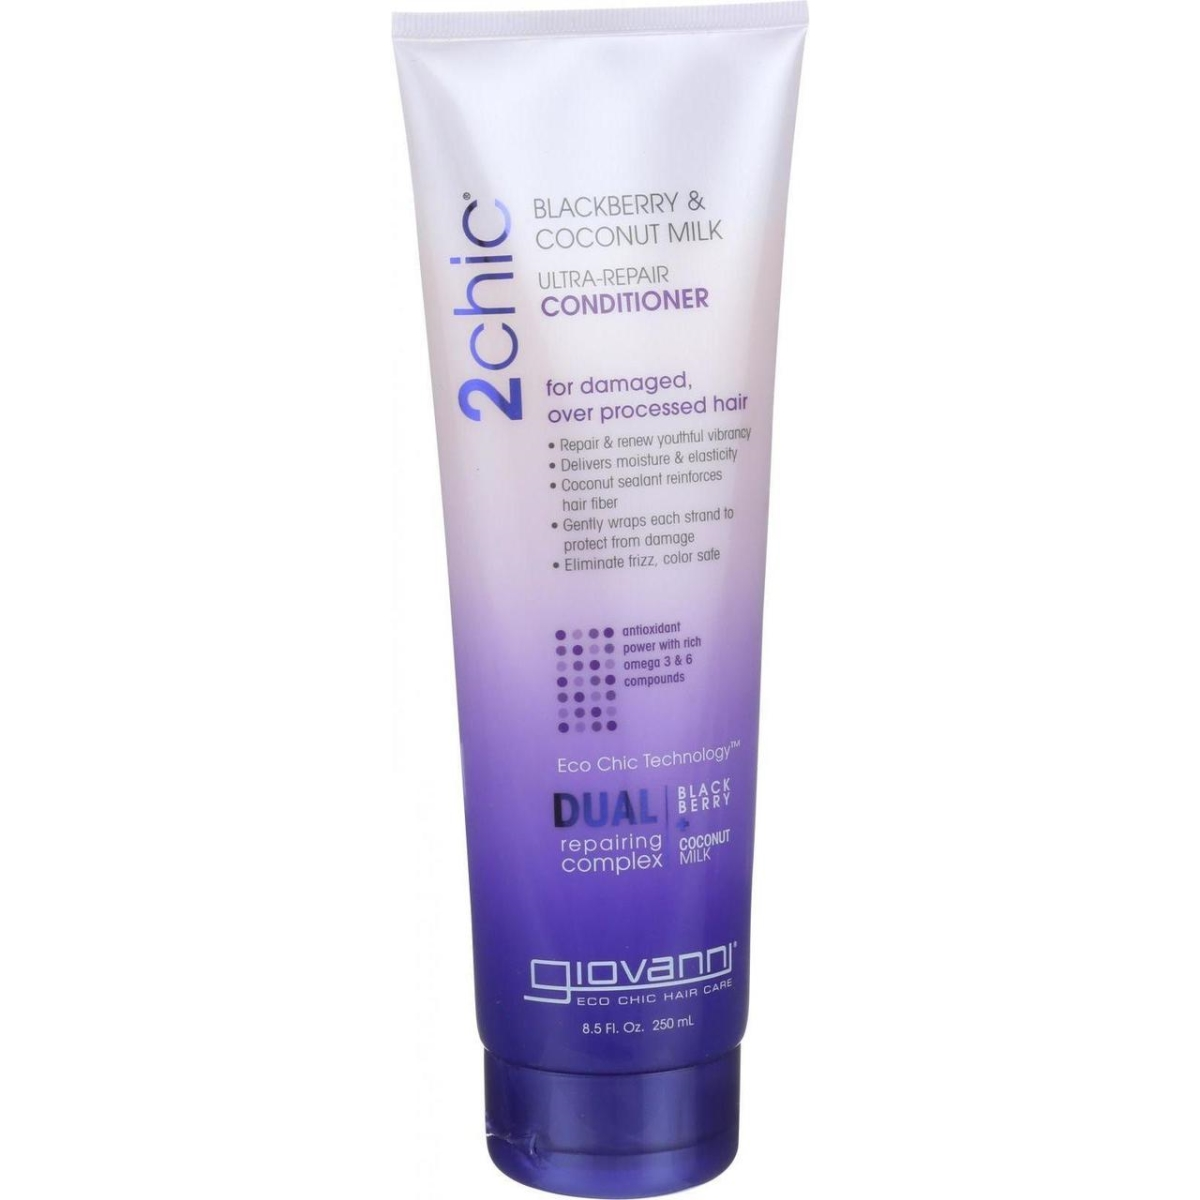 Giovanni Hair Care Products HG1626712 8.5 oz Conditioner 2chic Ultra Repair - Blackberry & Coconut Milk